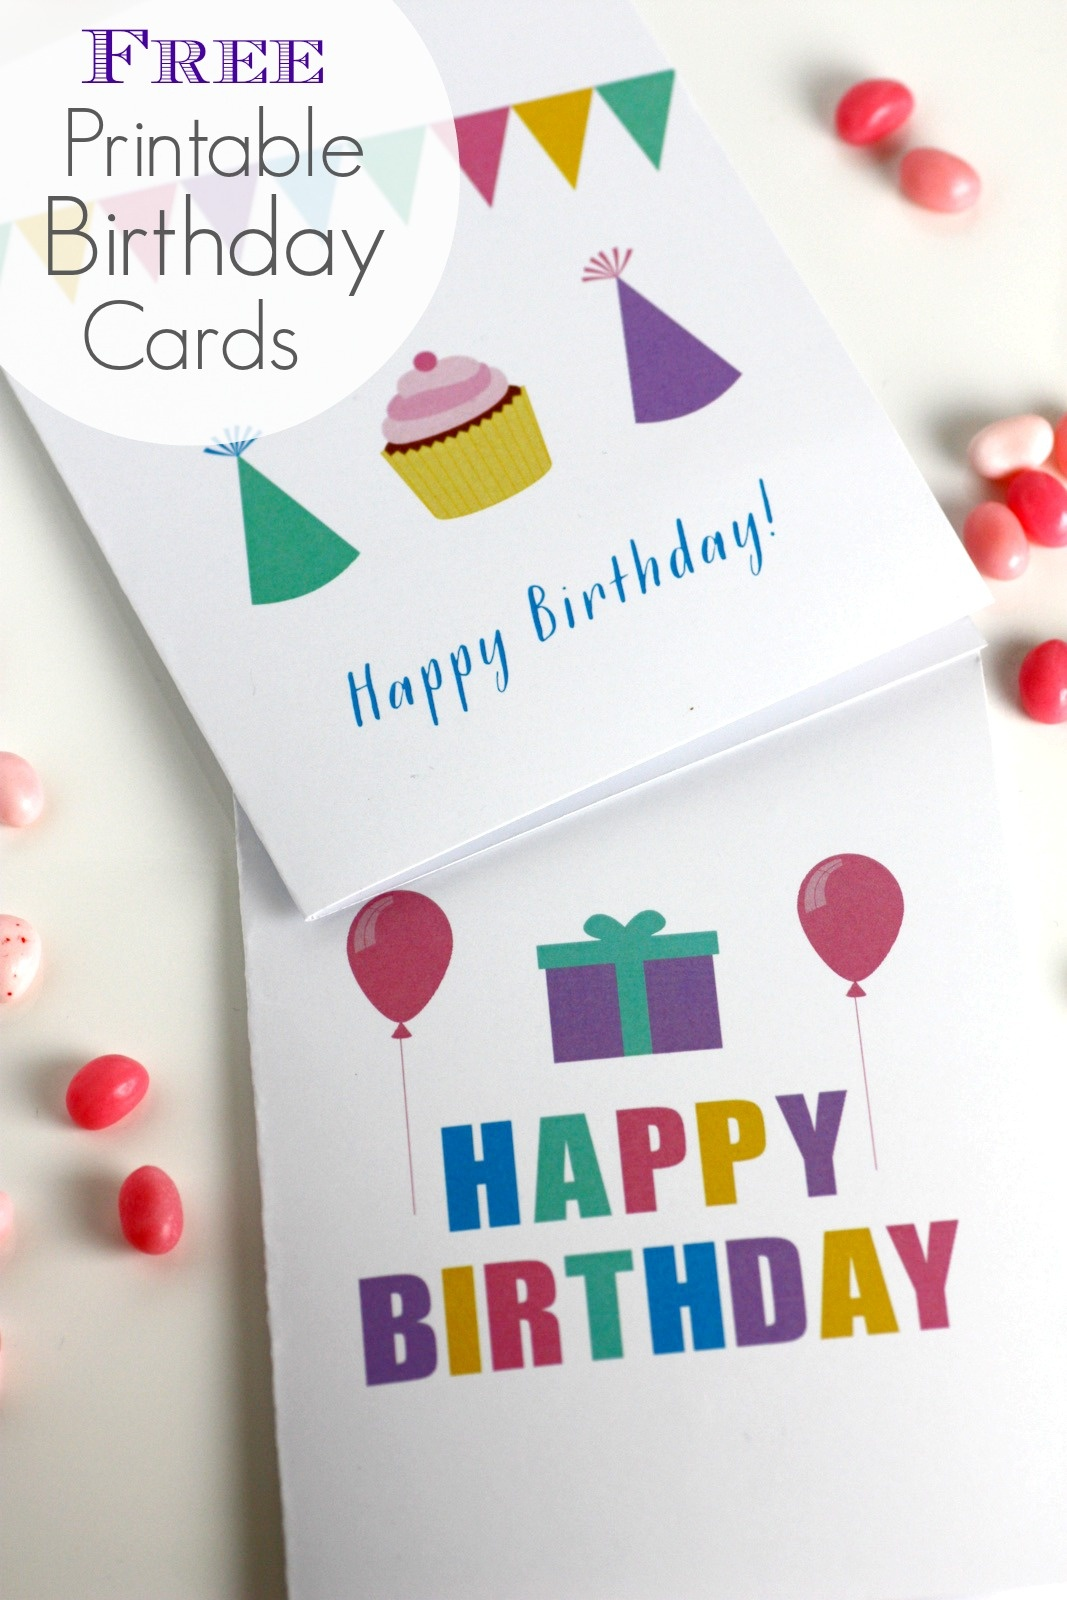 Free Printable Blank Birthday Cards | Catch My Party - Free Printable Birthday Cards For Adults